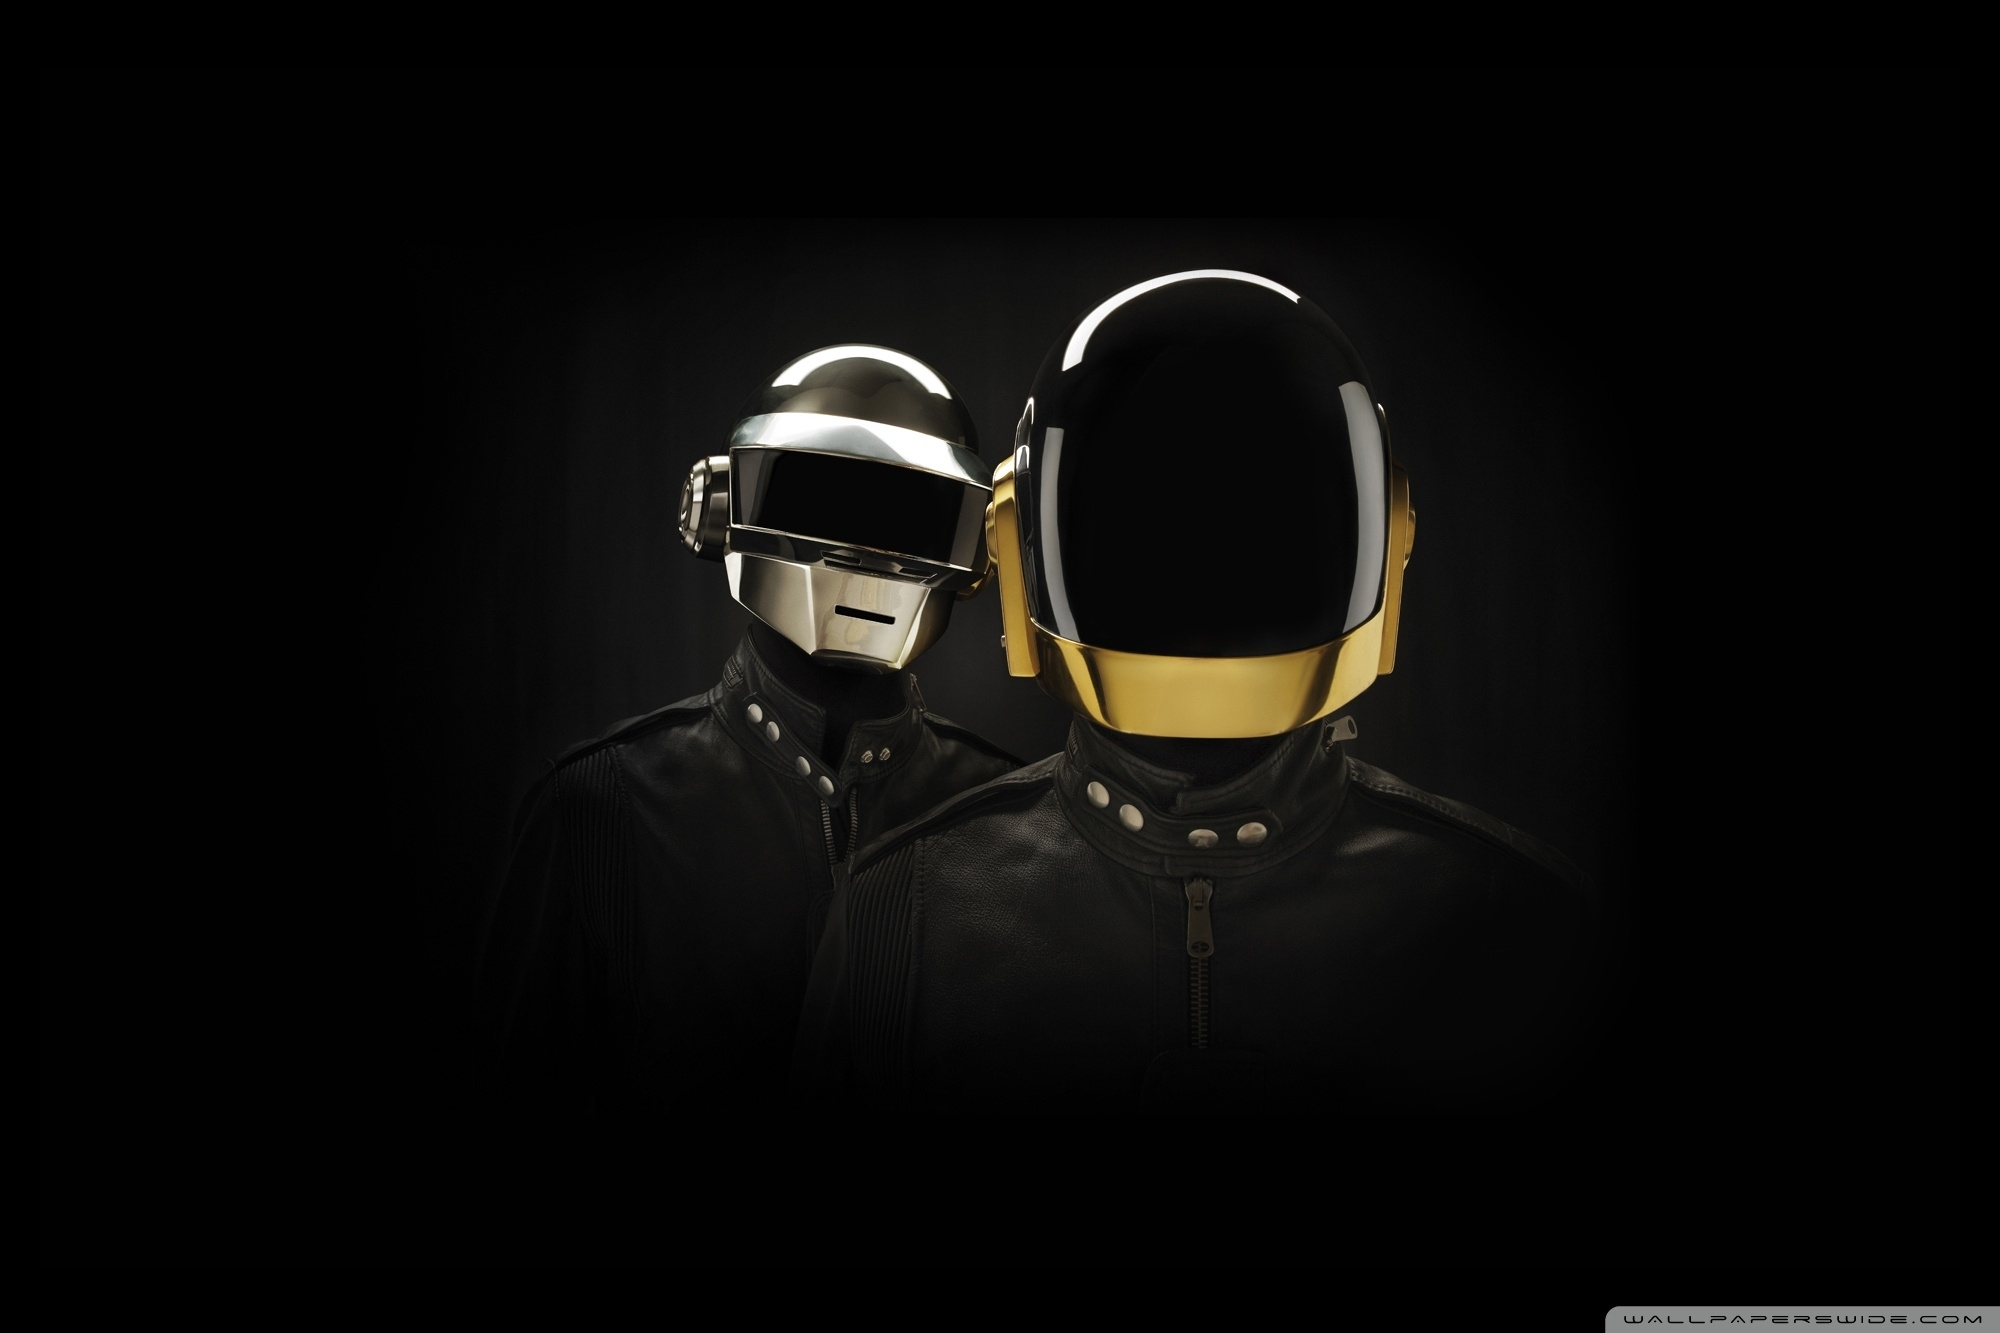 wallpaperswide ❤ daft punk hd desktop wallpapers for 4k ultra